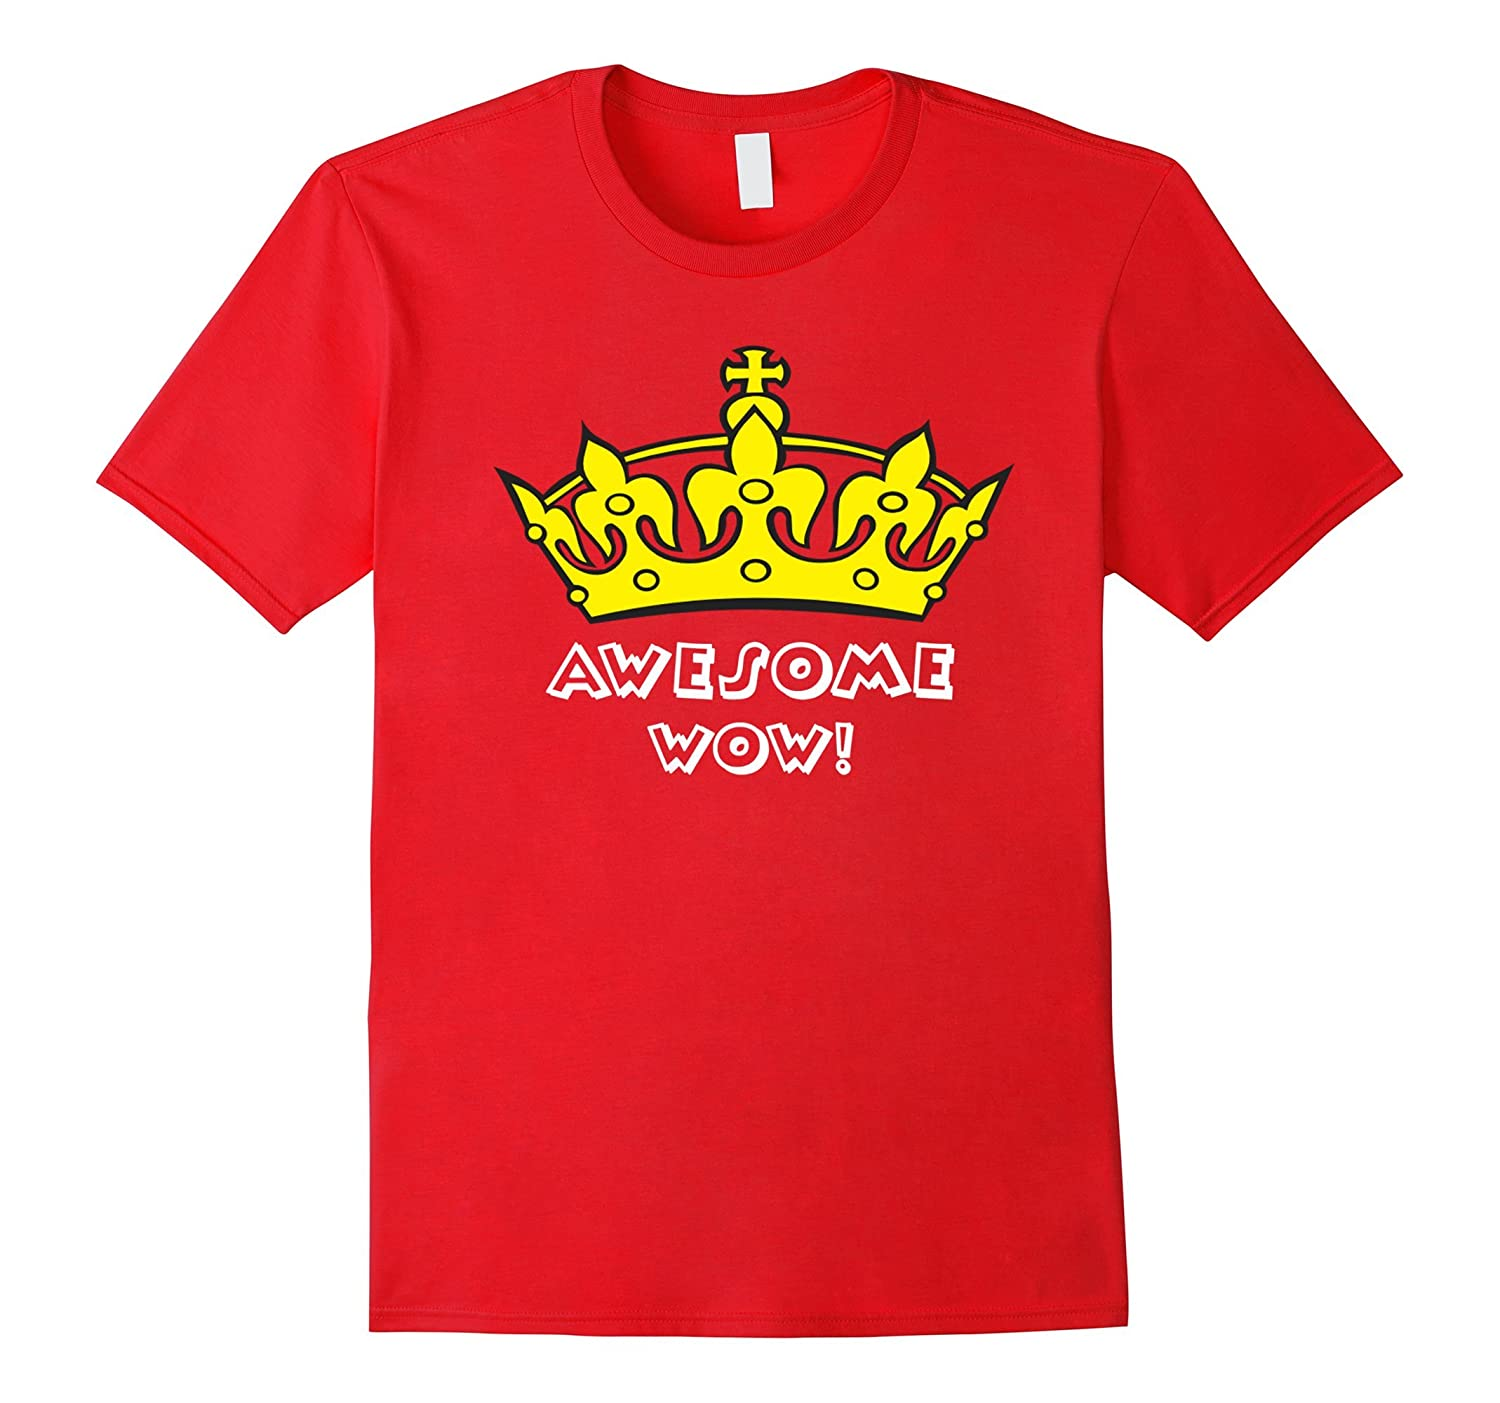 Awesome Hat Of King Wow T-shirt For You